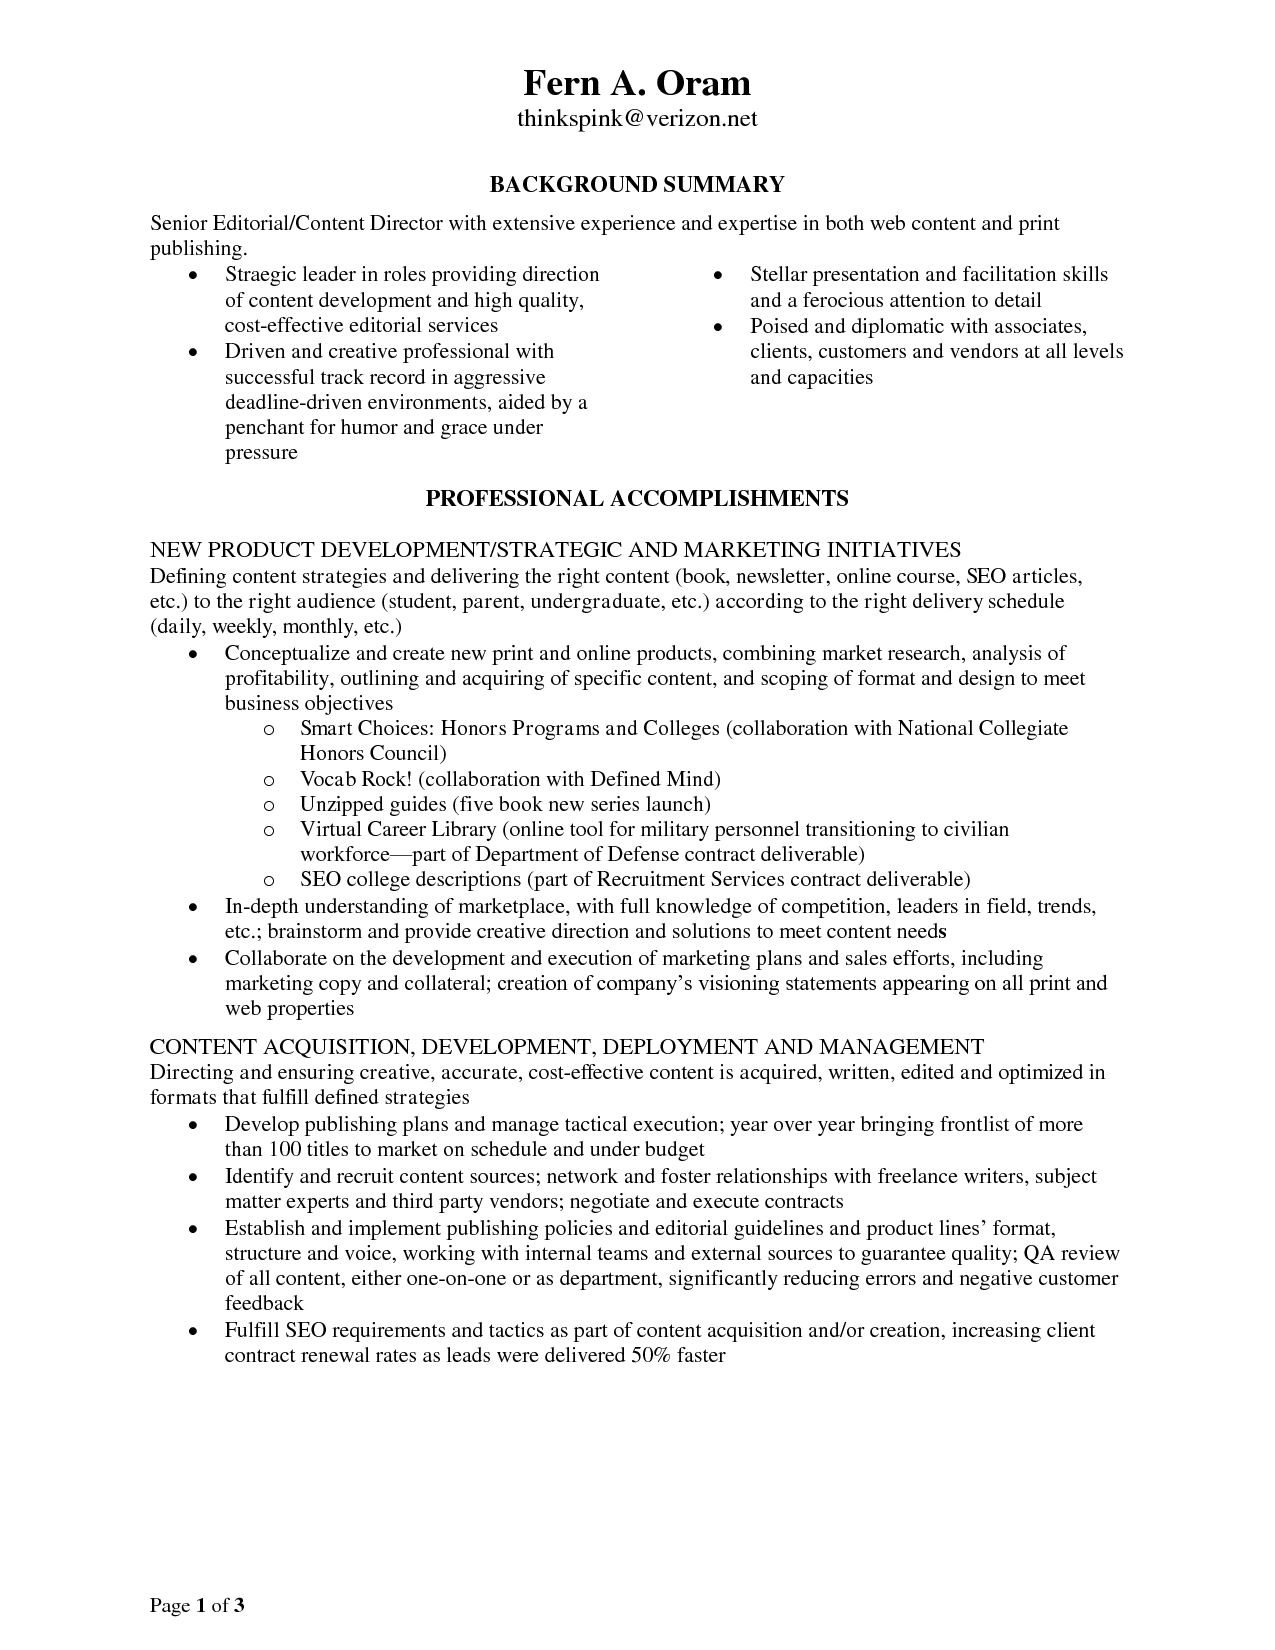 Sample Resume Formats Monster Resume Templates Free Monster Resume Templates Free